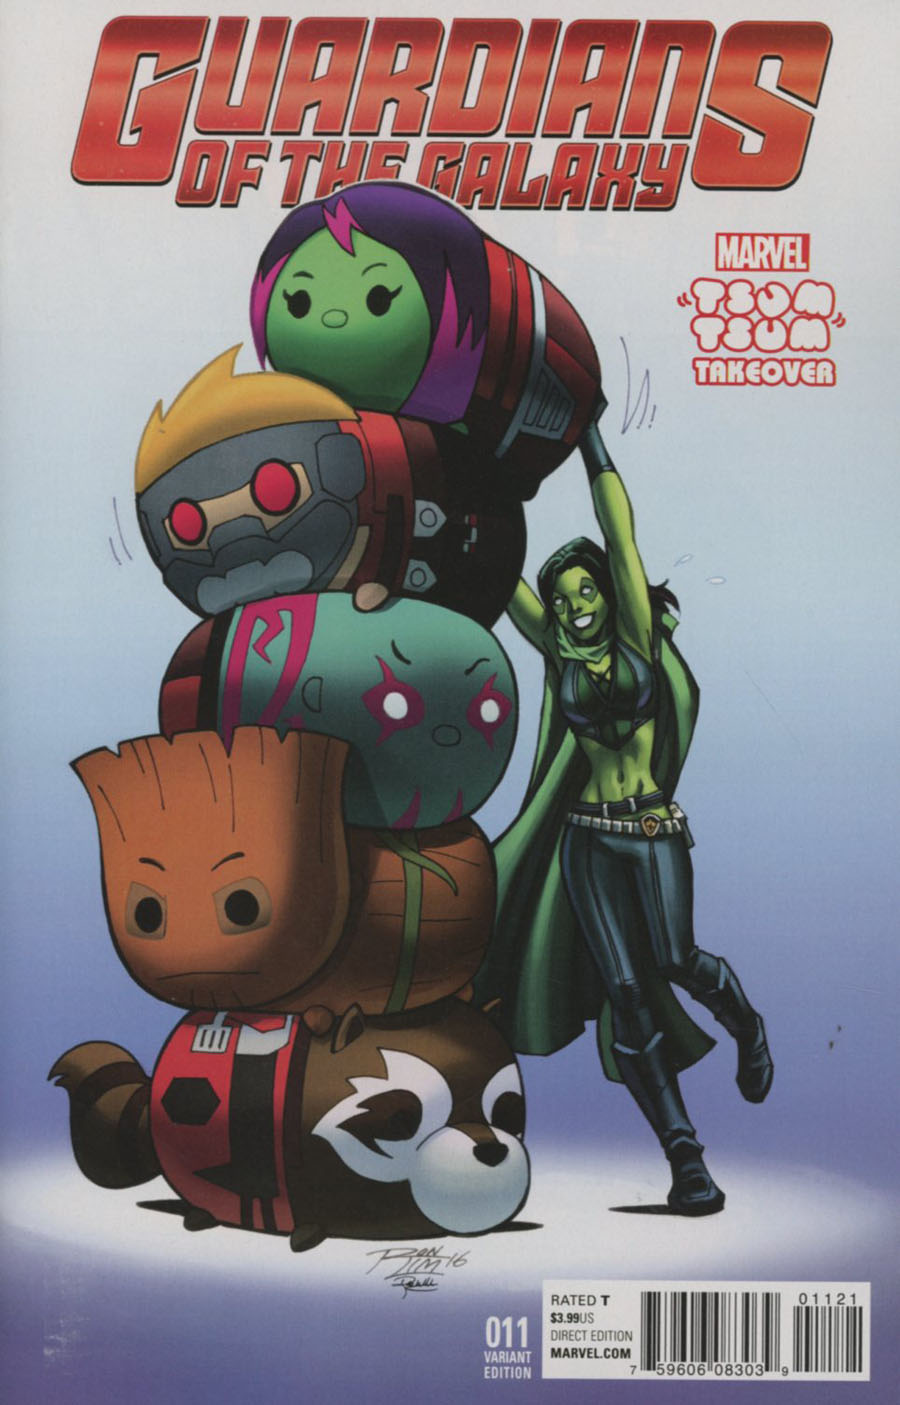 Guardians Of The Galaxy Vol 4 #11 Cover B Variant Marvel Tsum Tsum Takeover Cover (Civil War II Tie-In)